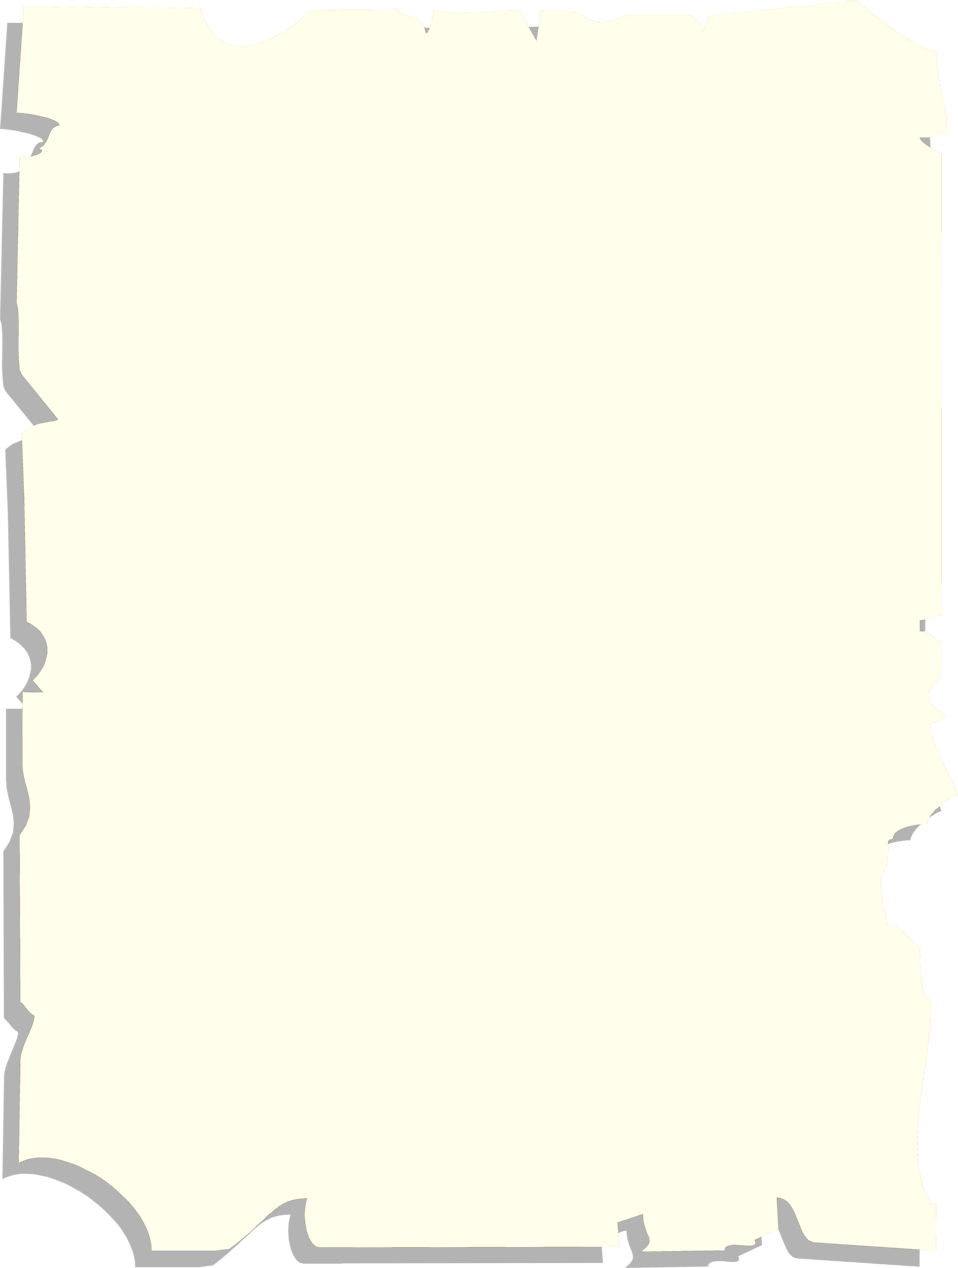 Torn note png. Border free stock photo